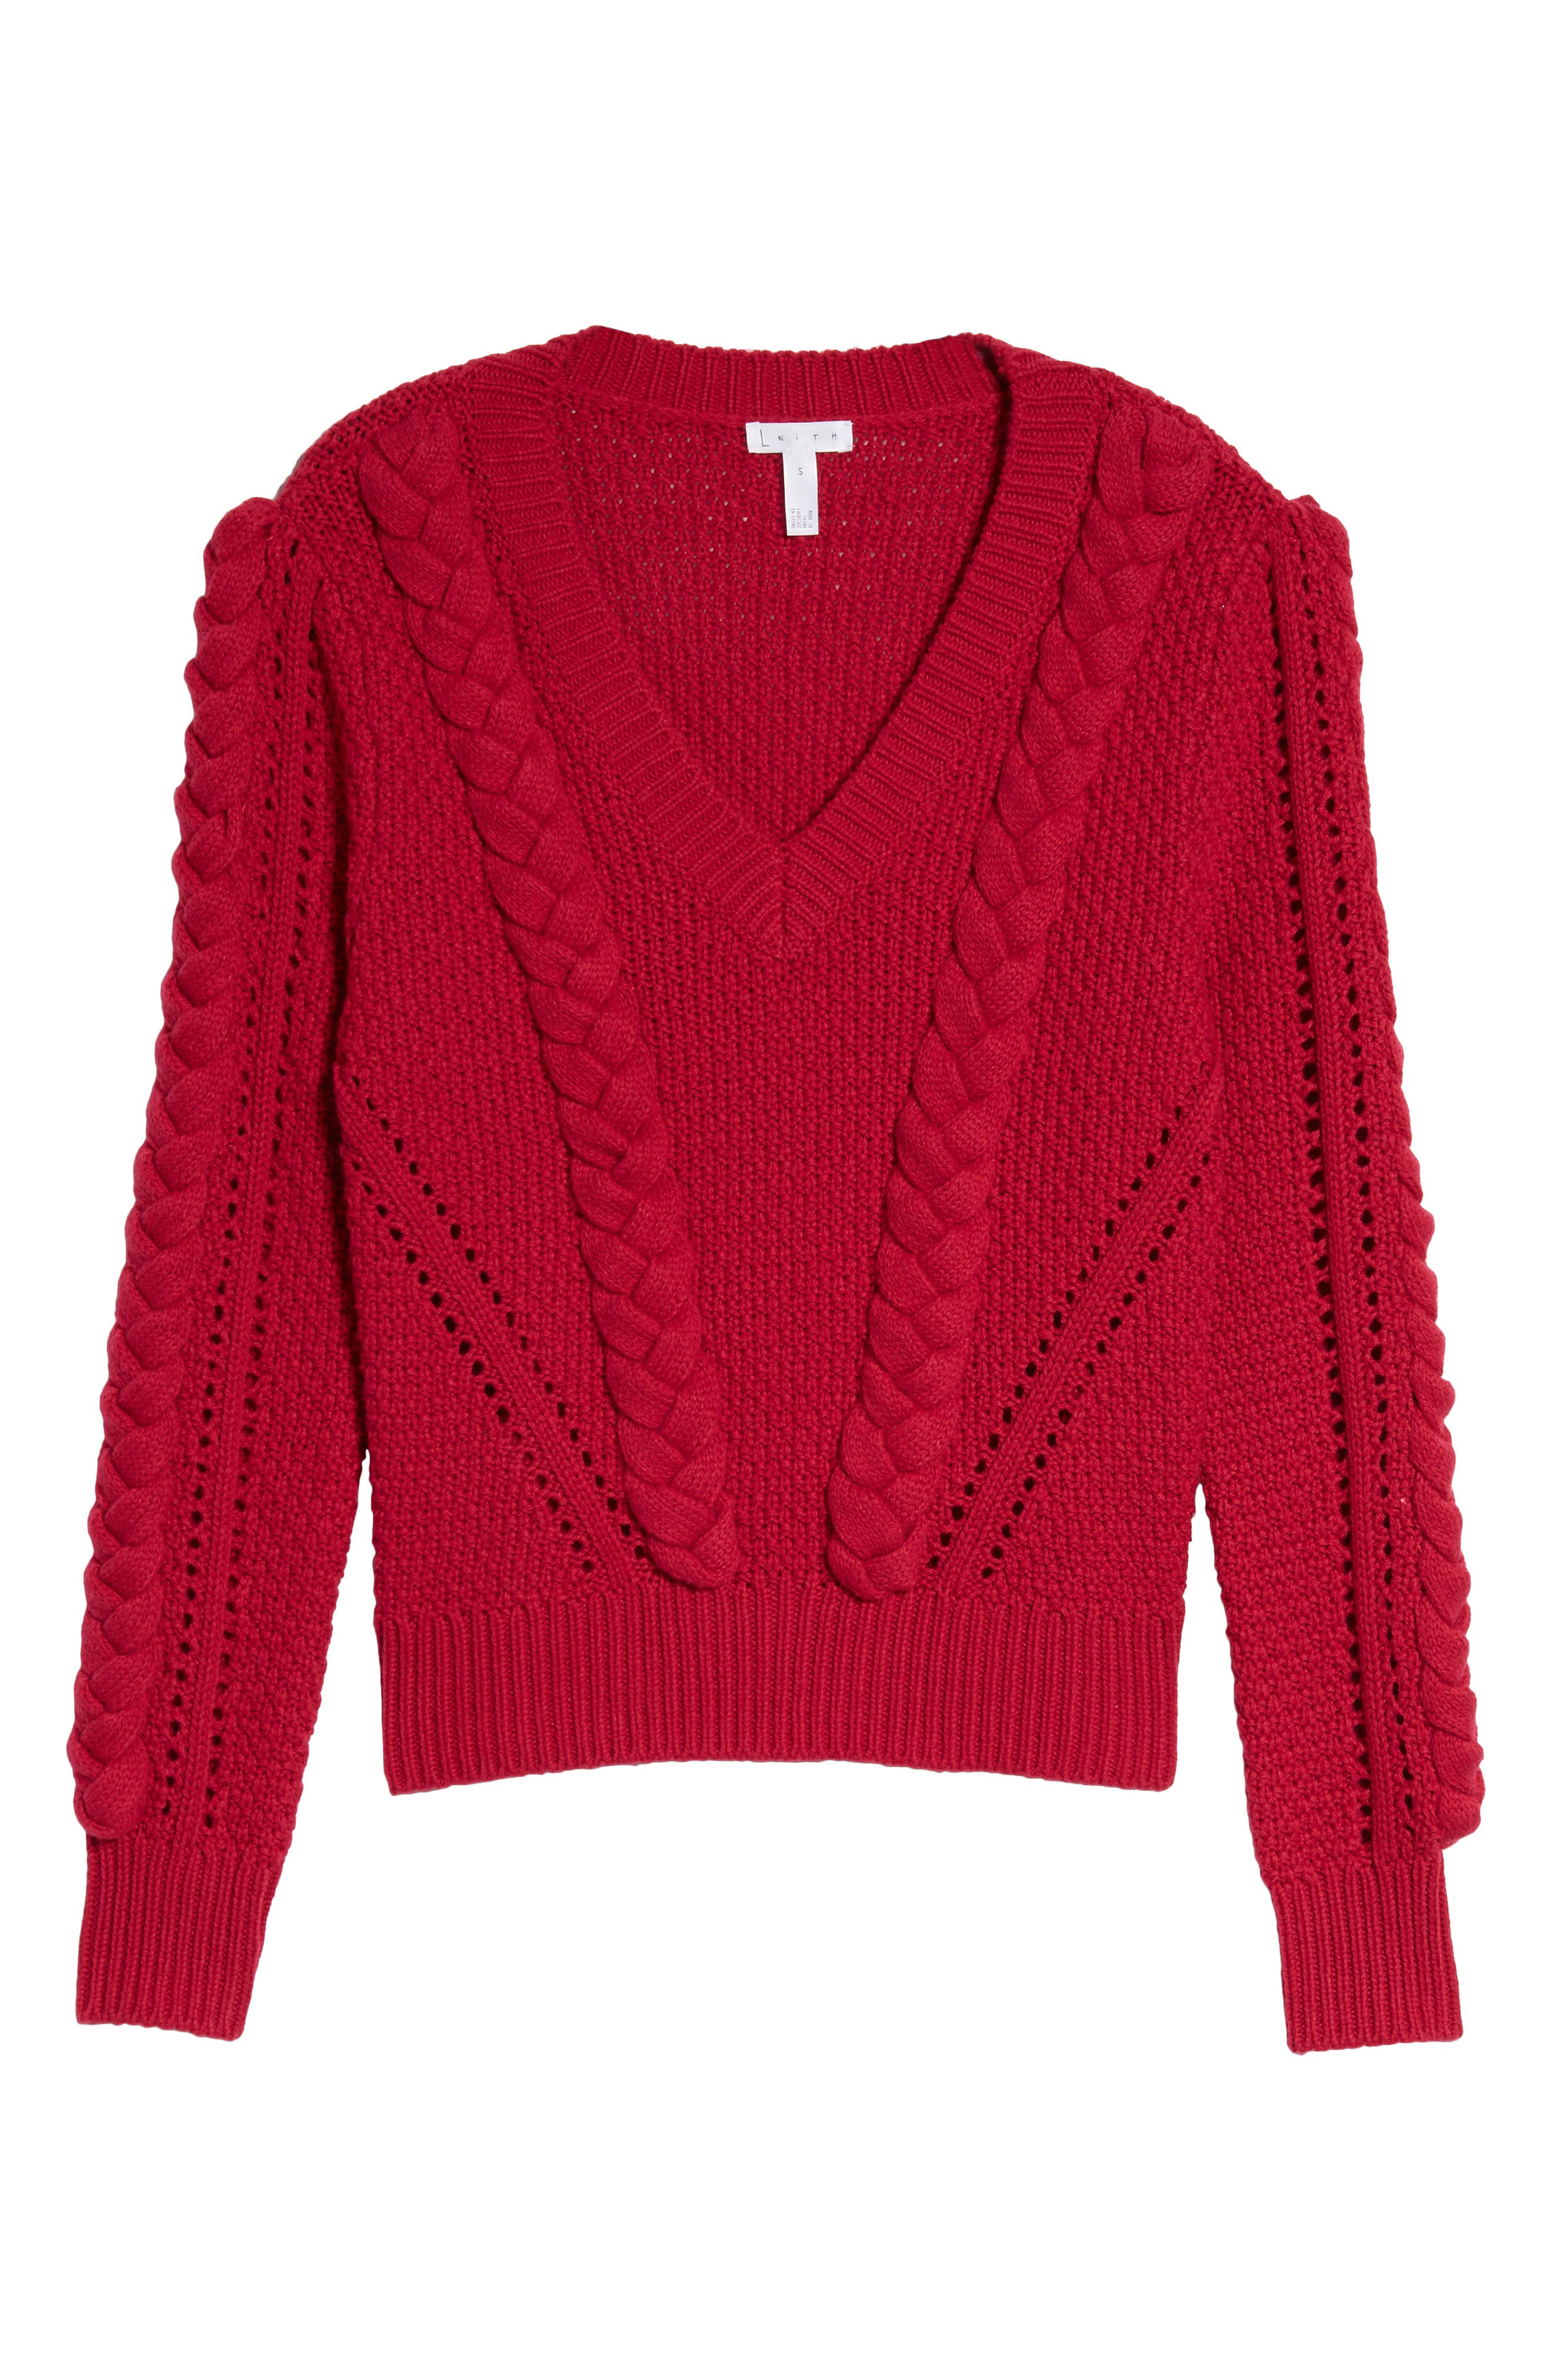 Power Cable Sweater,                             Alternate thumbnail 6, color,                             Red Cerise